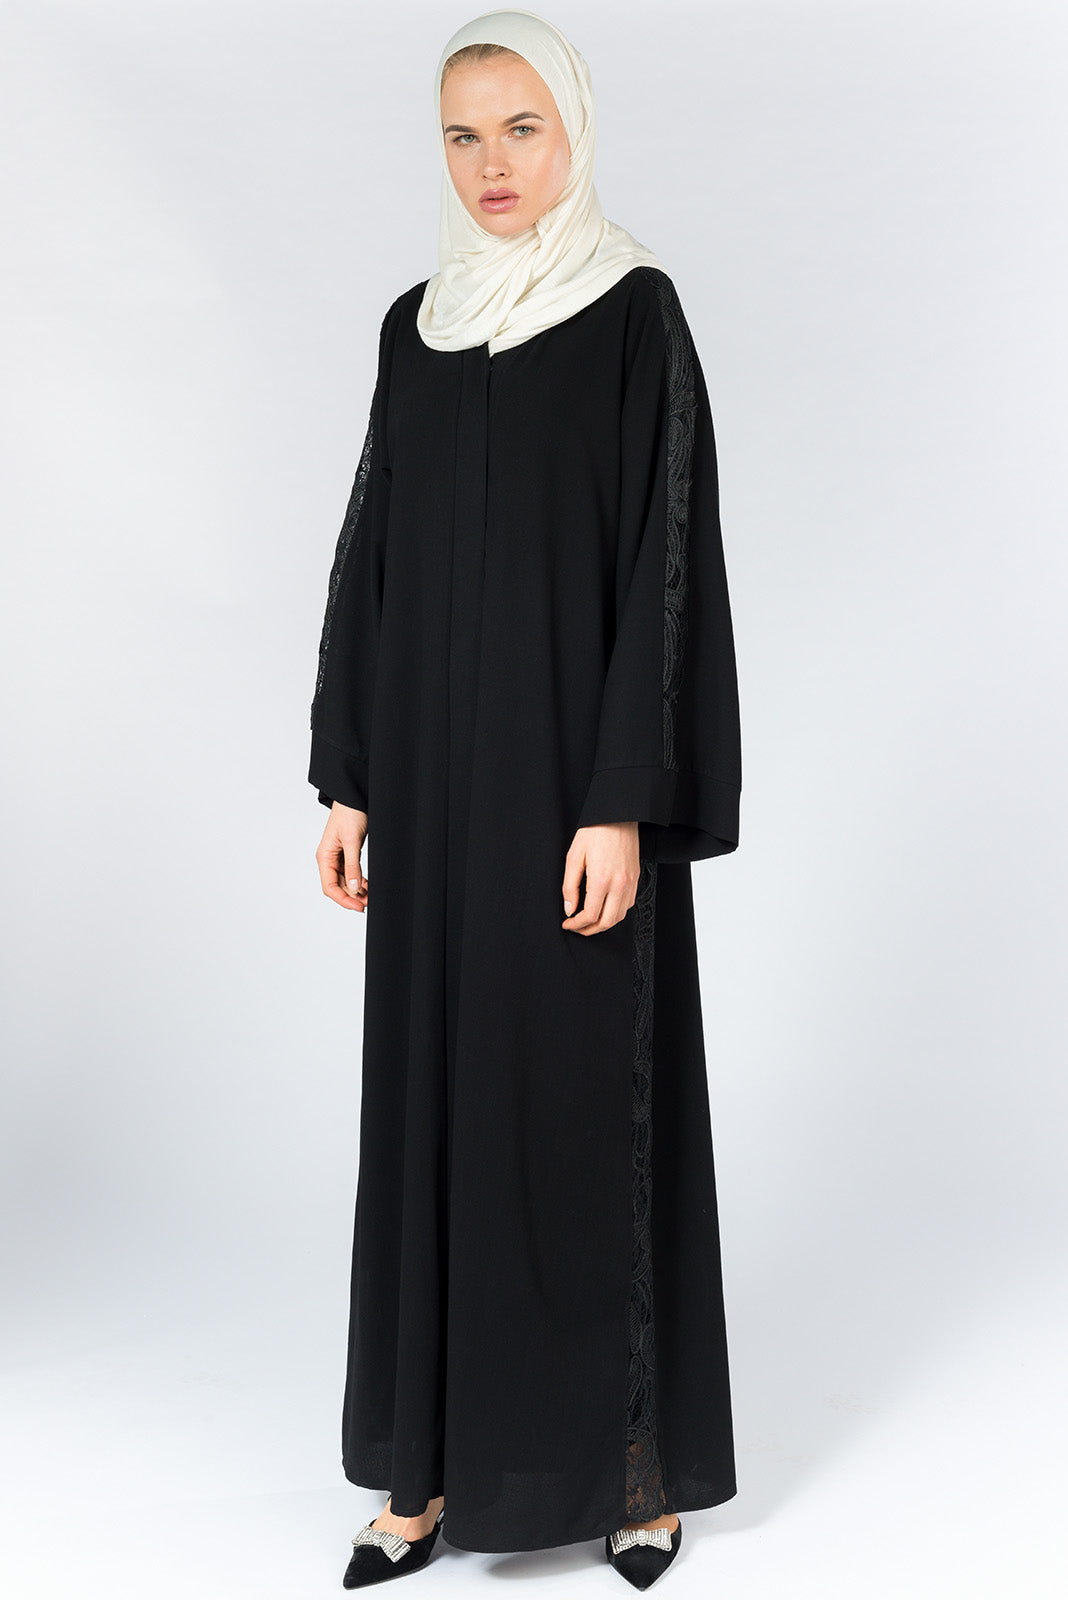 Black Closed Abaya with Lace On Sleeves and Sides in Silk